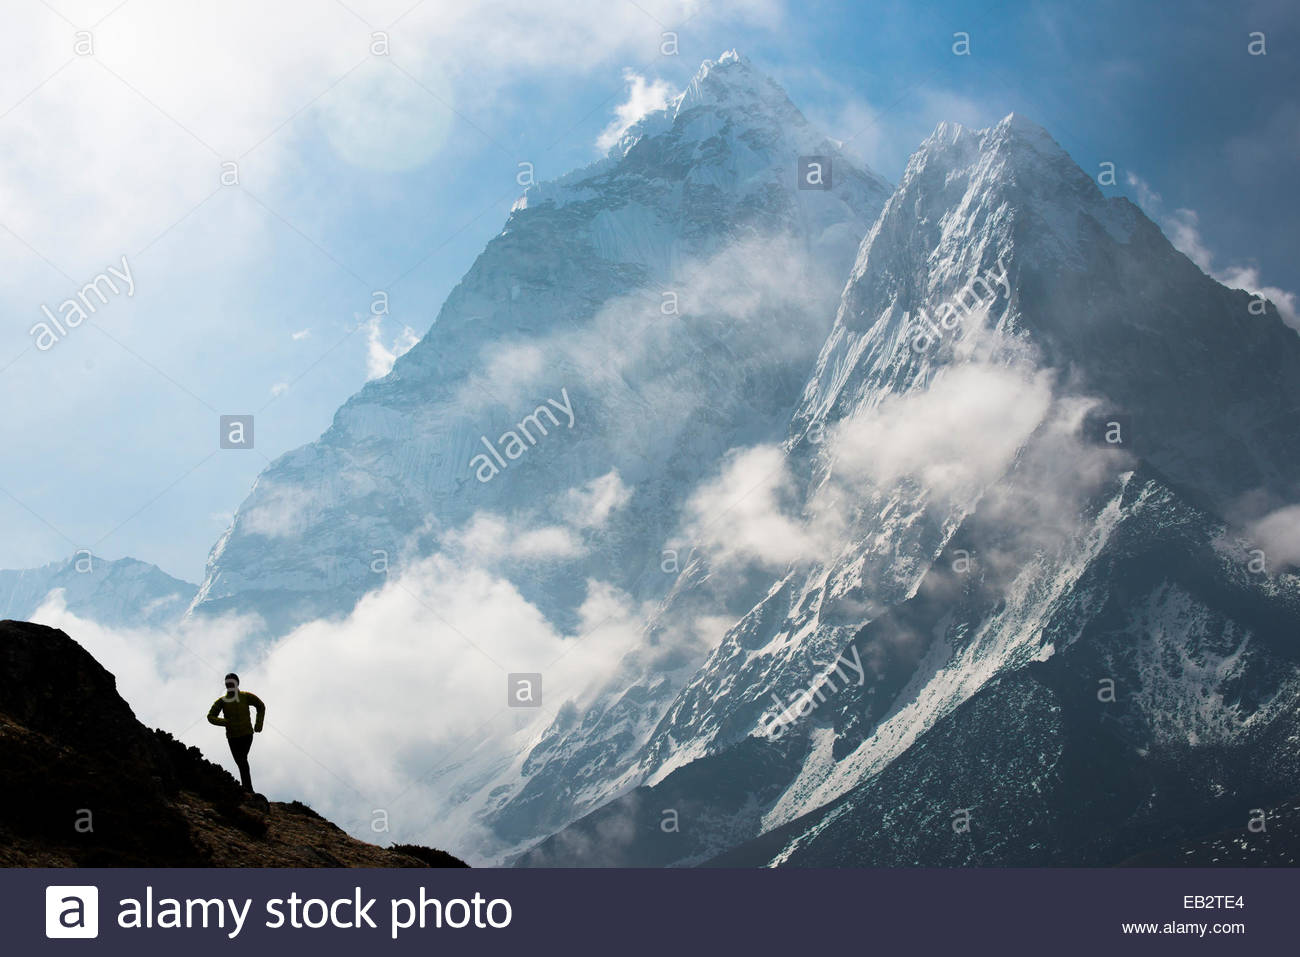 Lizzy Hawker ��� the 100km world champion runner �����while competing in the Everest Base Camp to Kathmandu Mailrun: - Stock Image